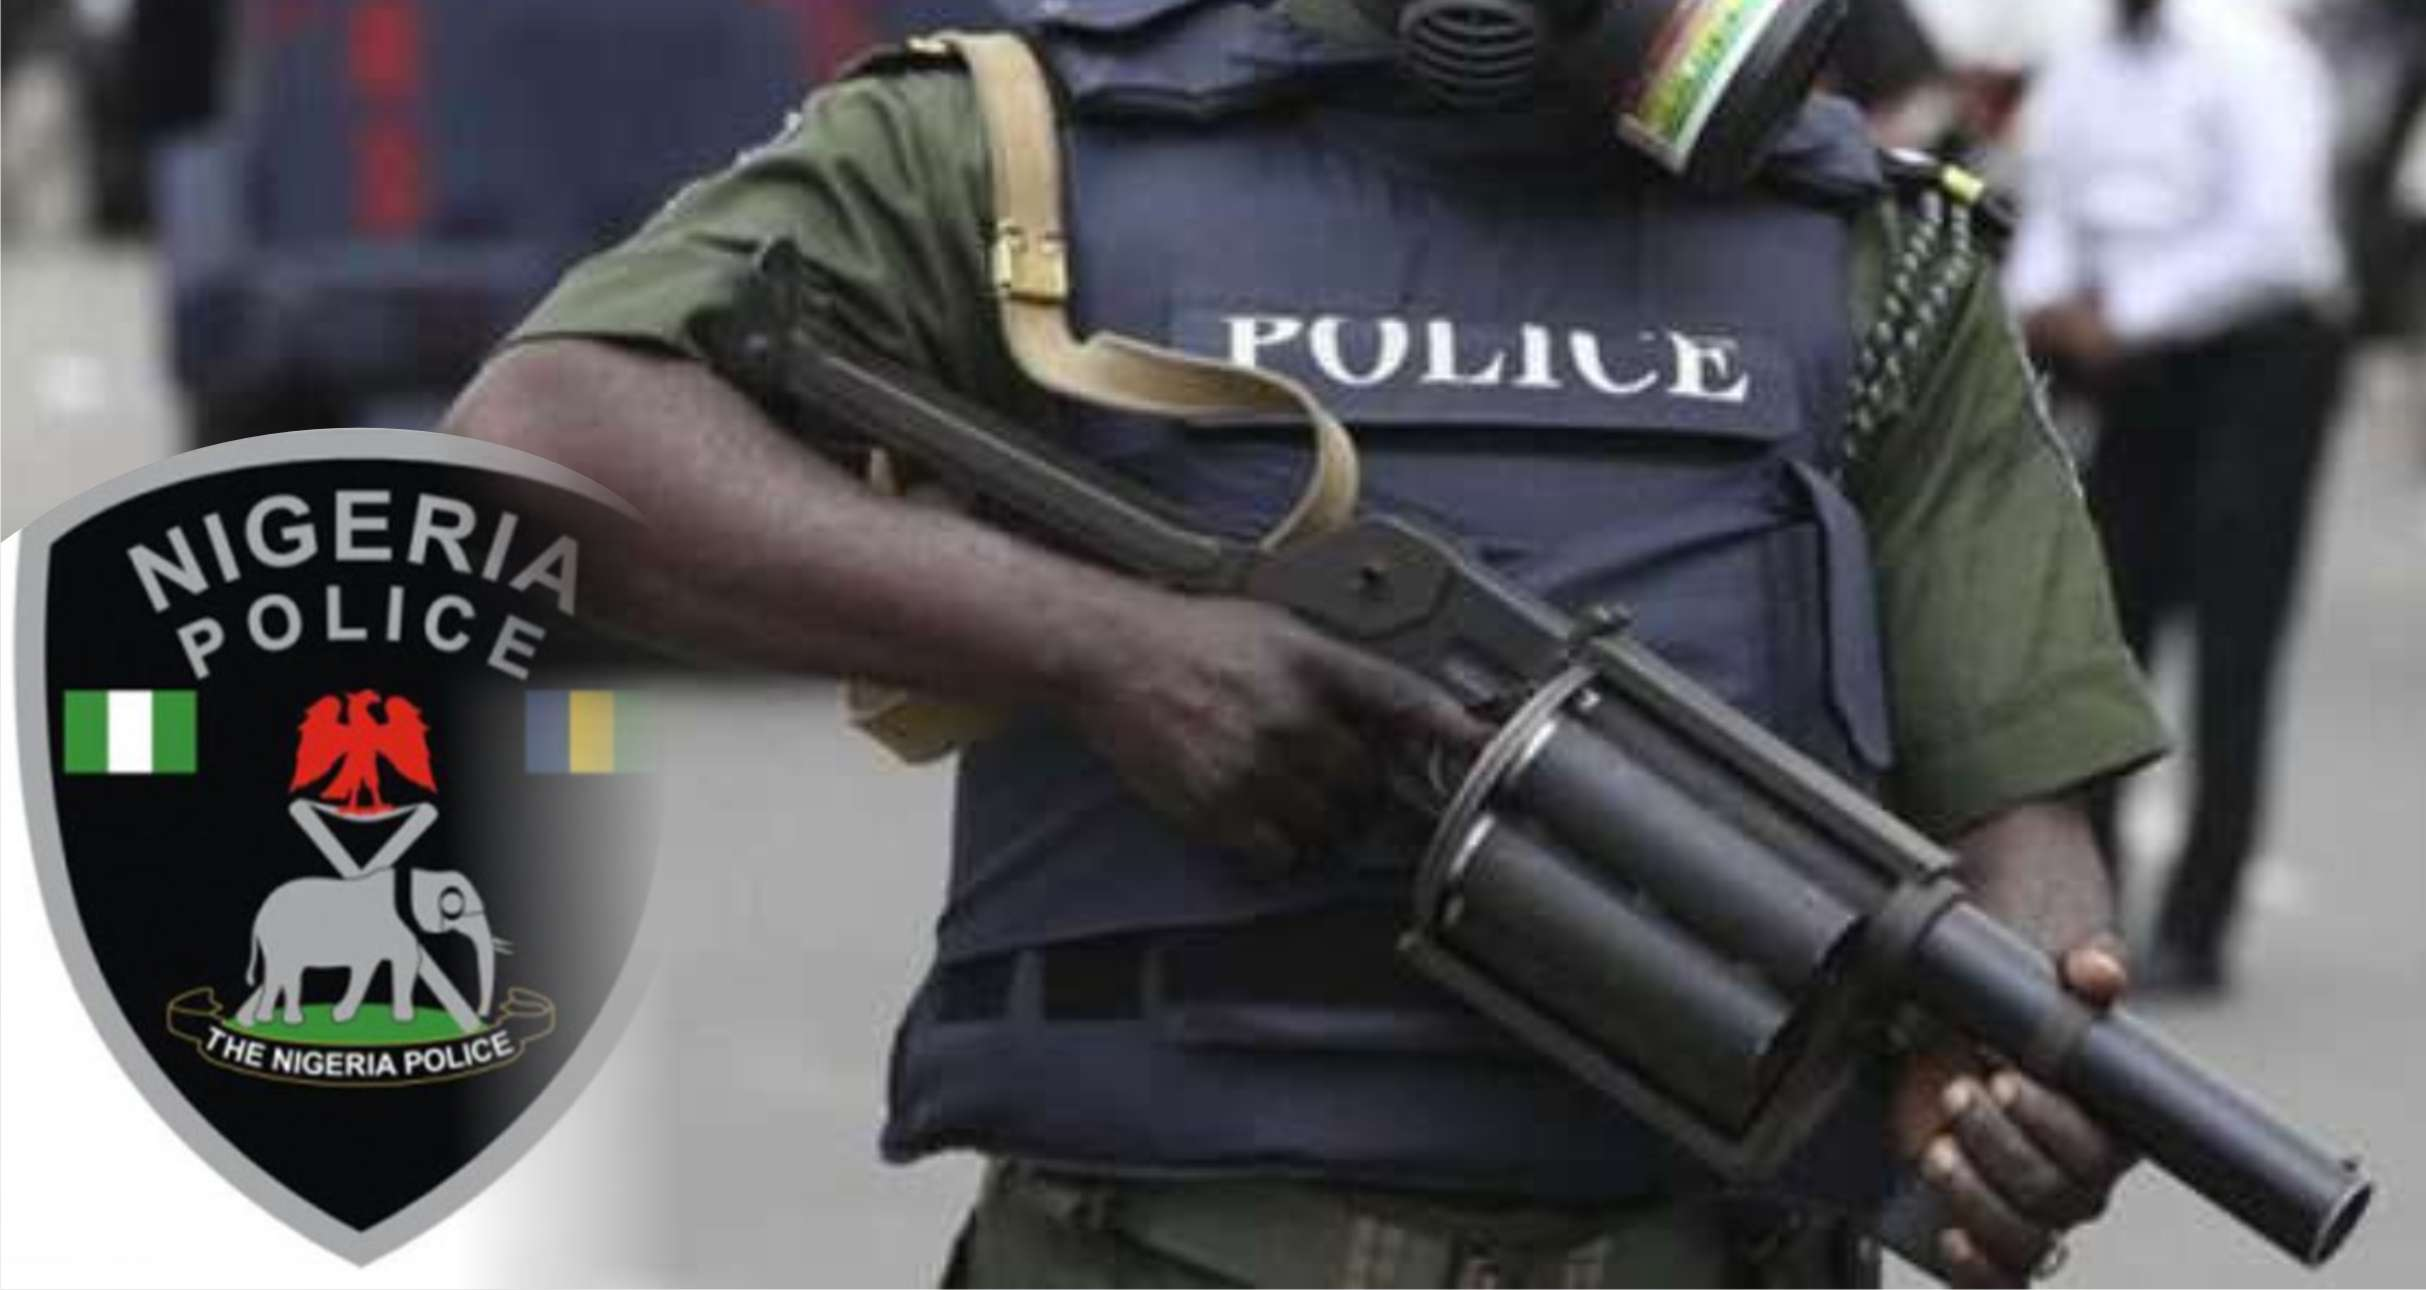 BREAKING: Lagos Policemen block Ojuelegba road, point guns at motorists